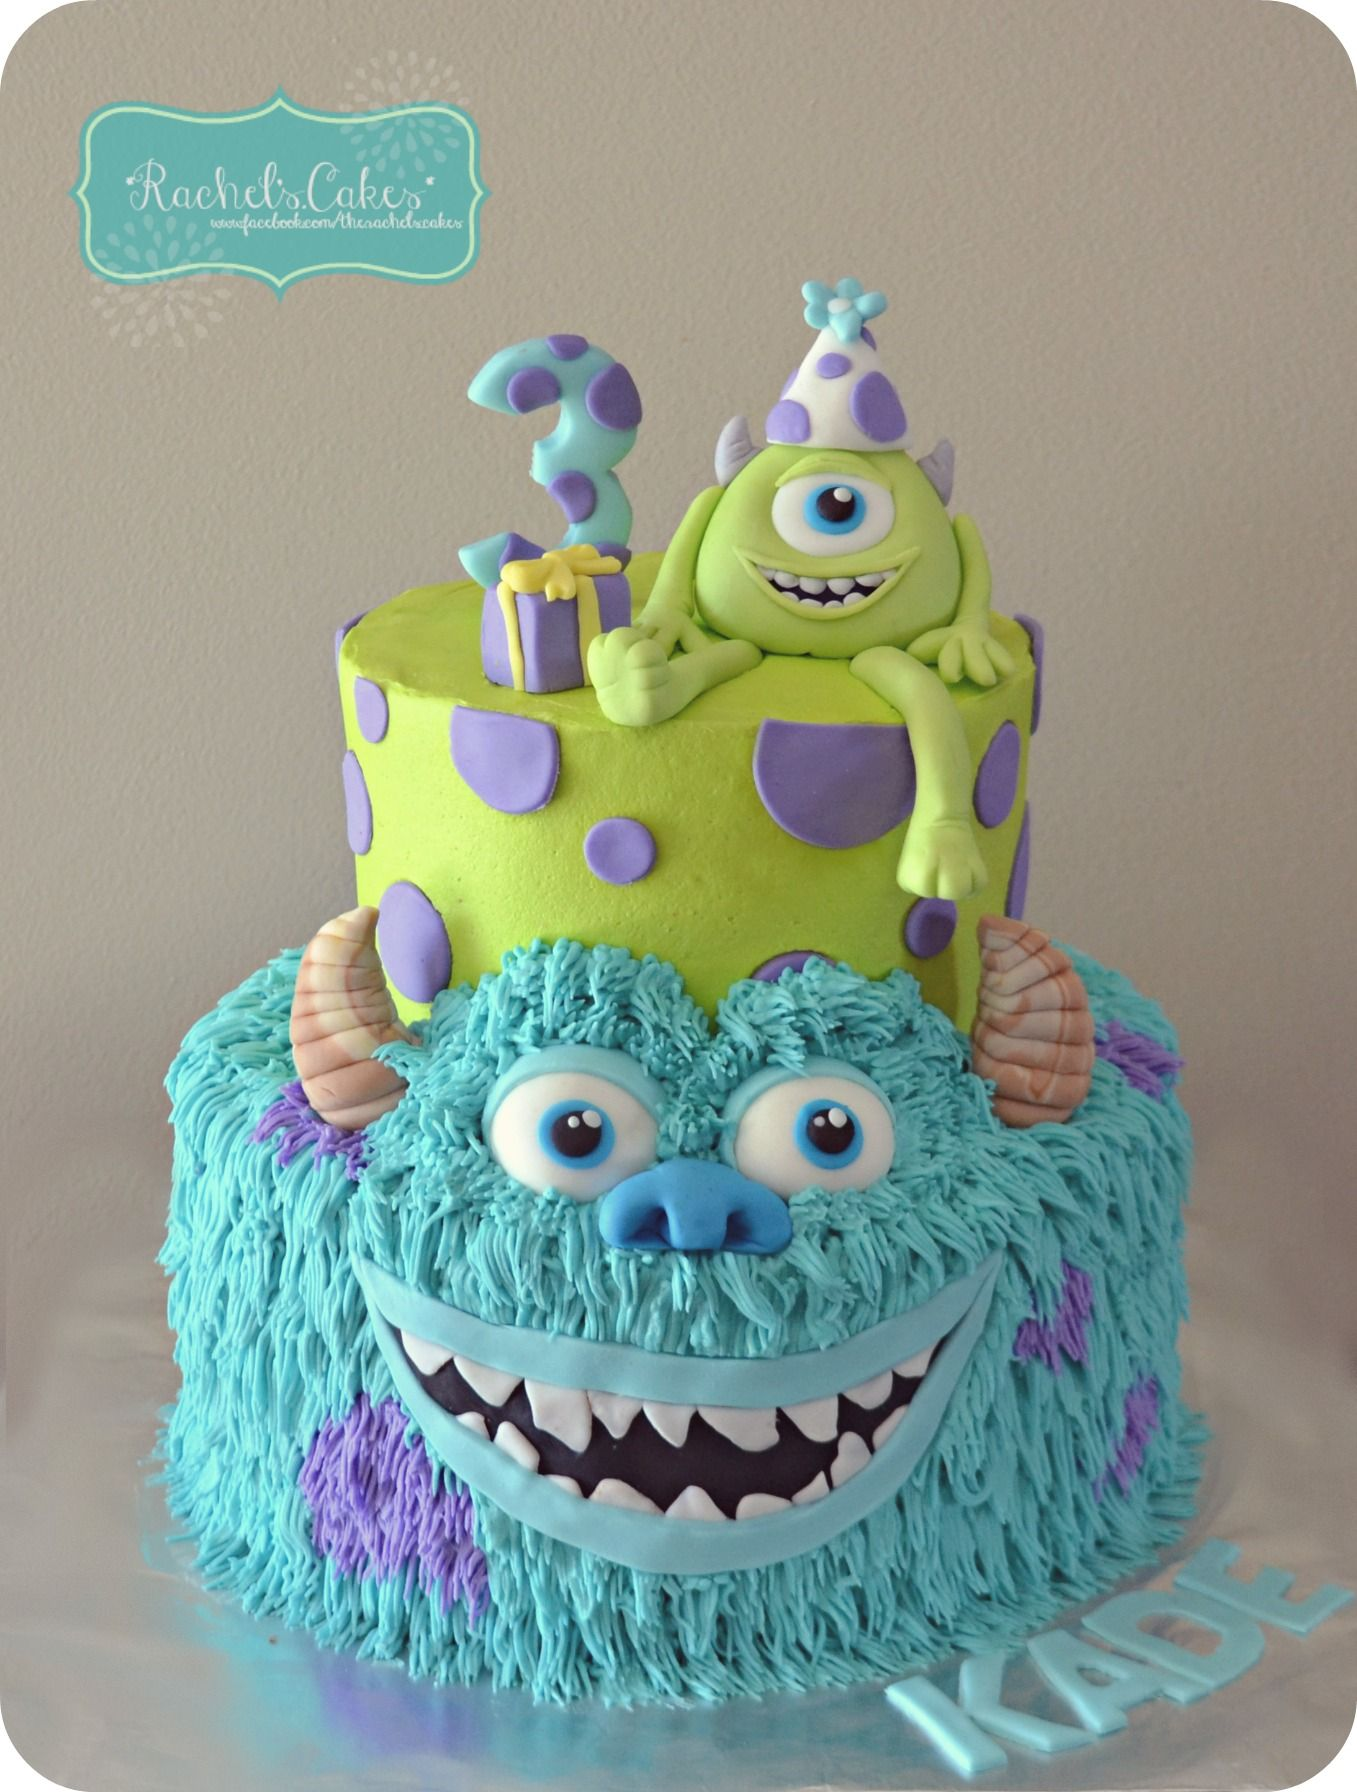 Sensational Monsters Inc Cake Inspired By Another Pinterest Pin With Personalised Birthday Cards Sponlily Jamesorg